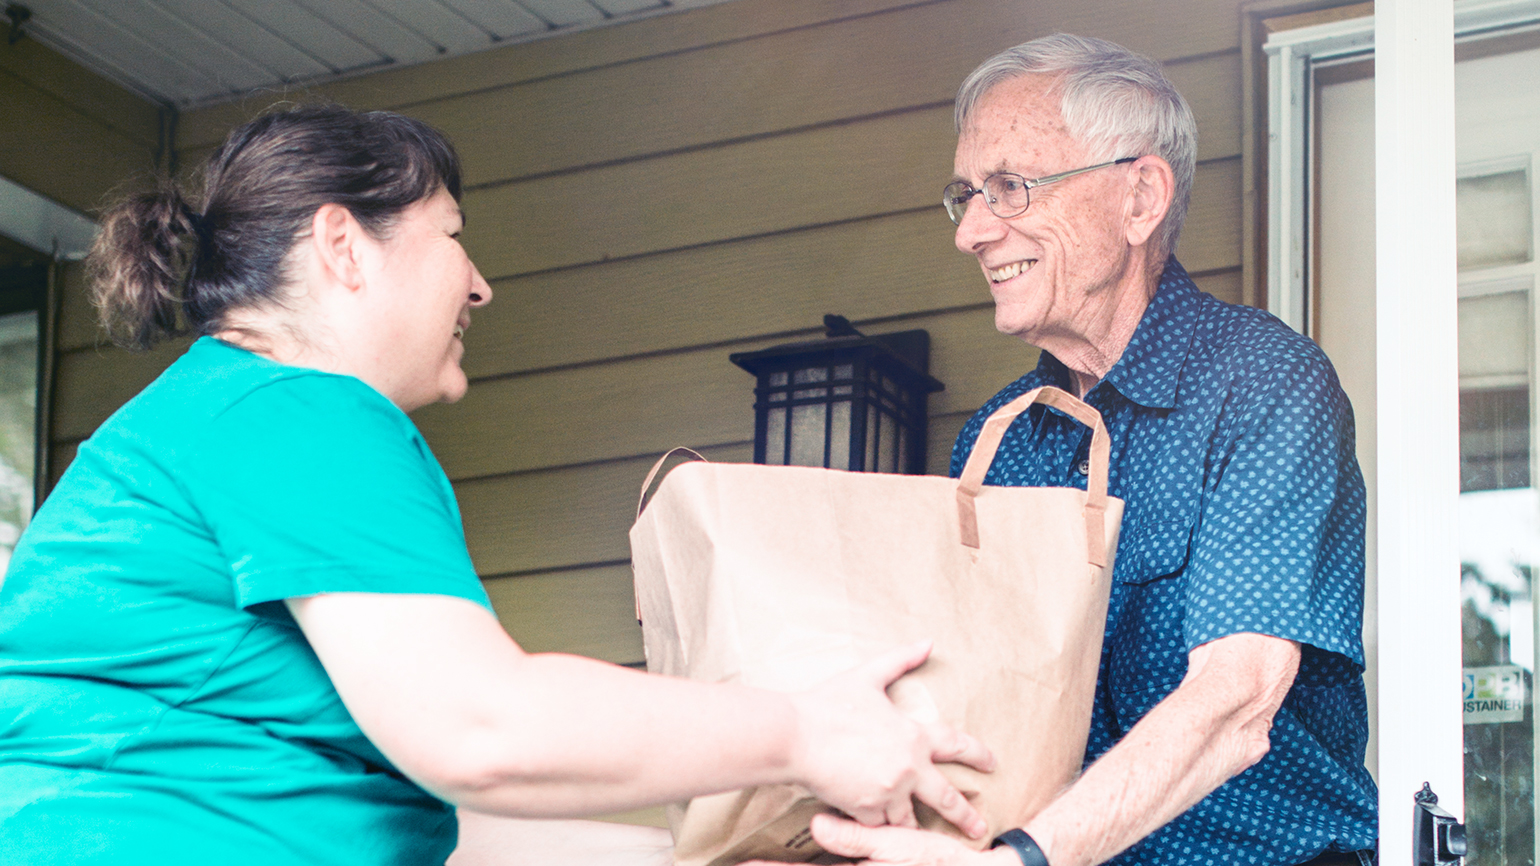 A woman brings a bag of groceries to her senior neighbor